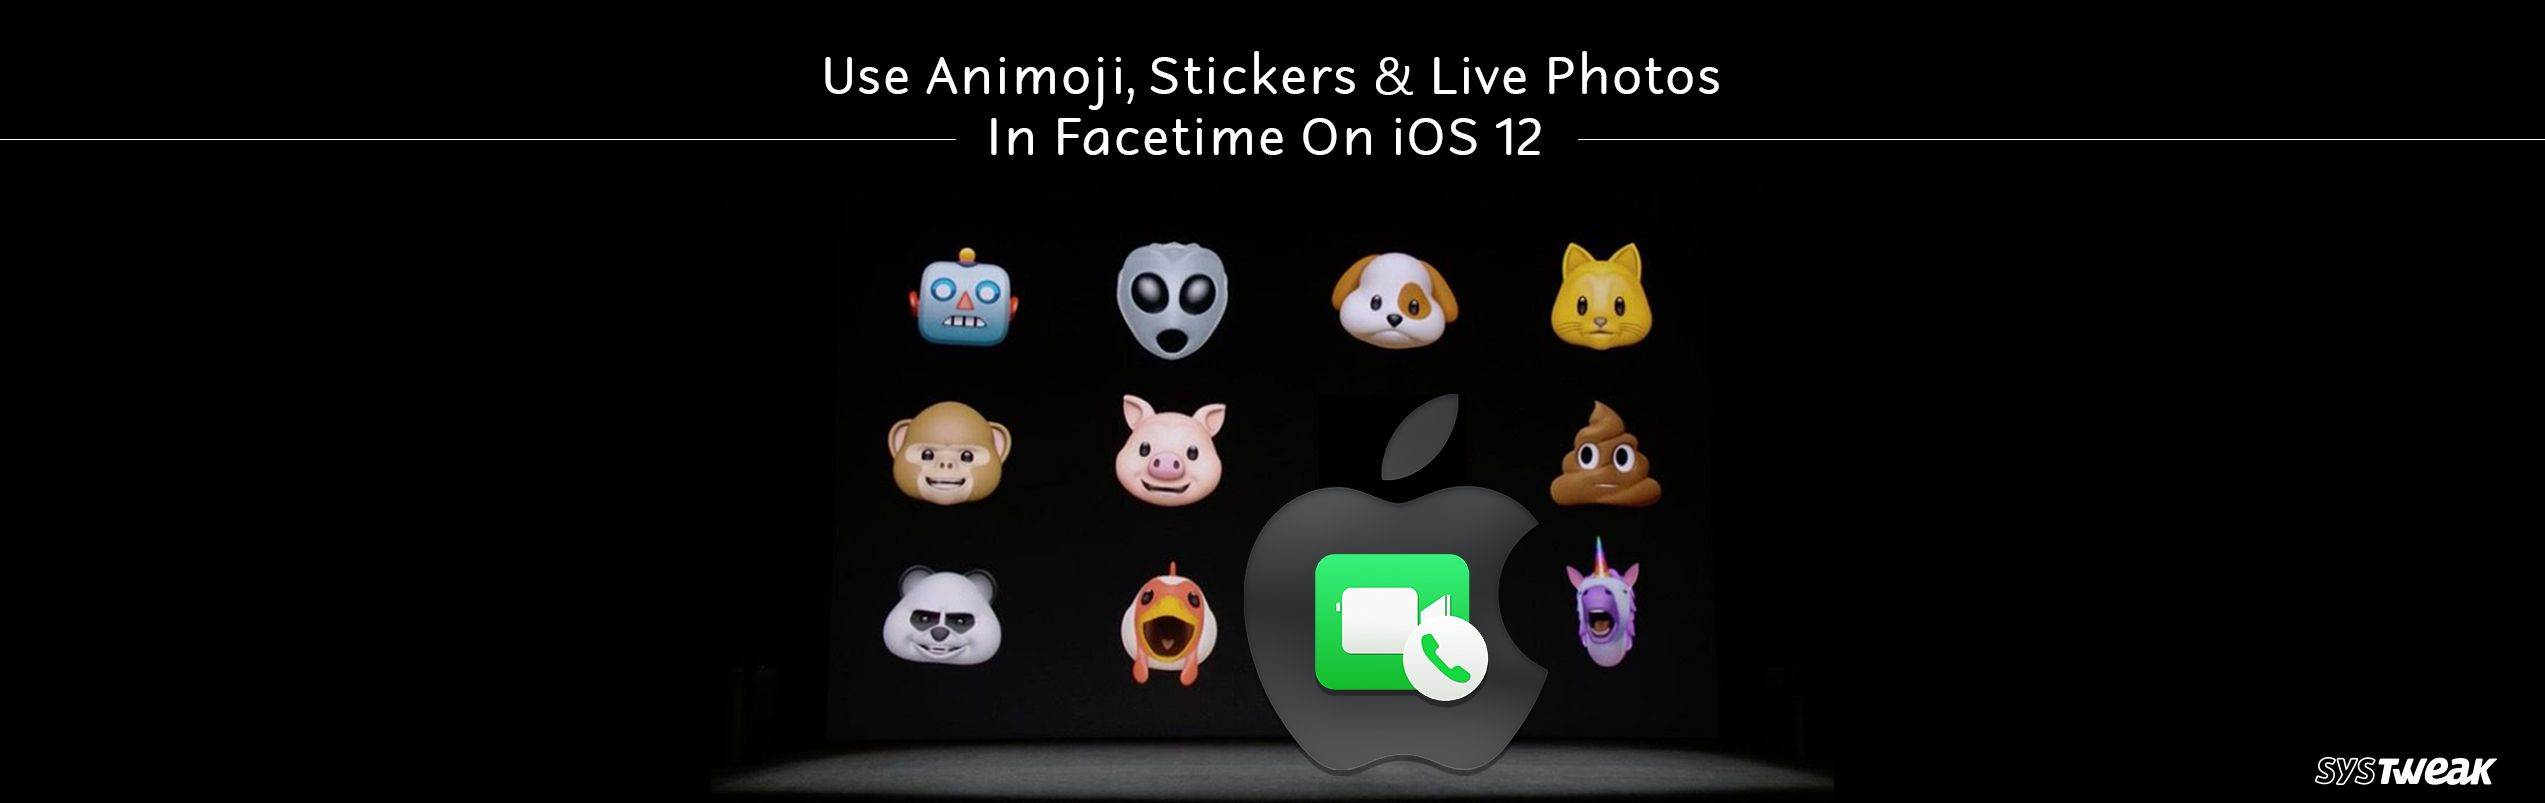 How To Enable Take Live Photos In FaceTime On iOS12